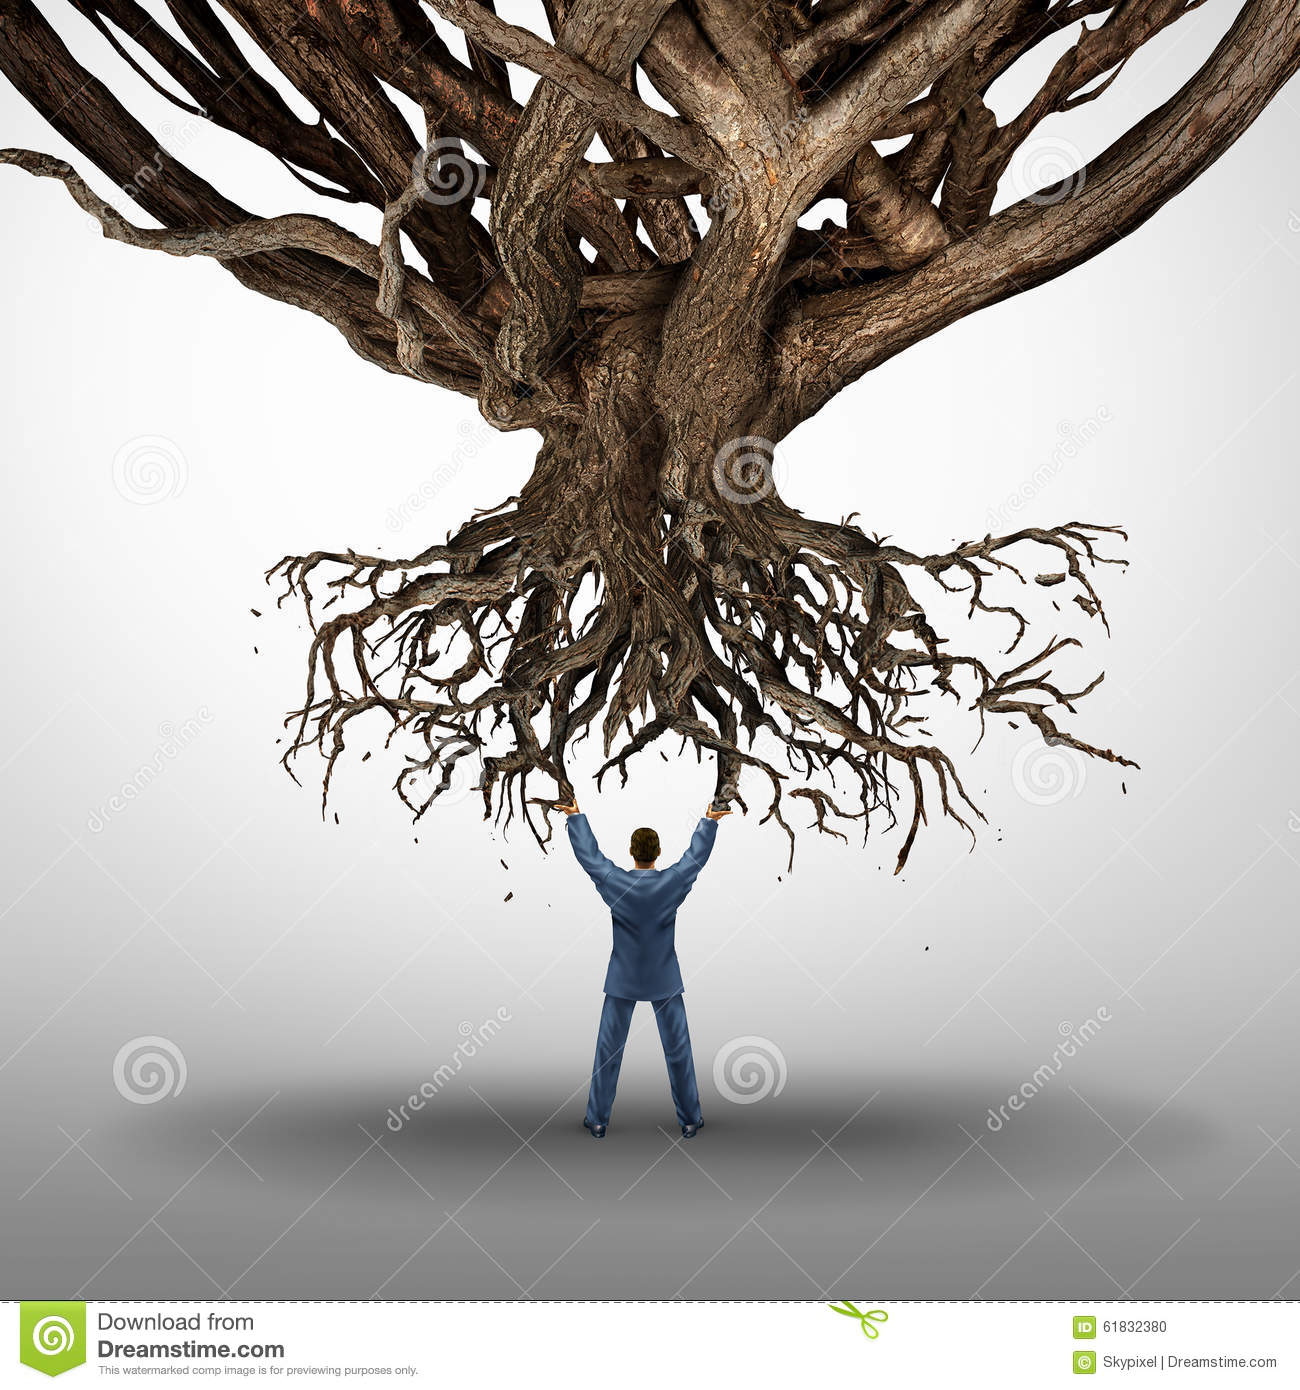 Uprooted Tree Stock Illustrations.